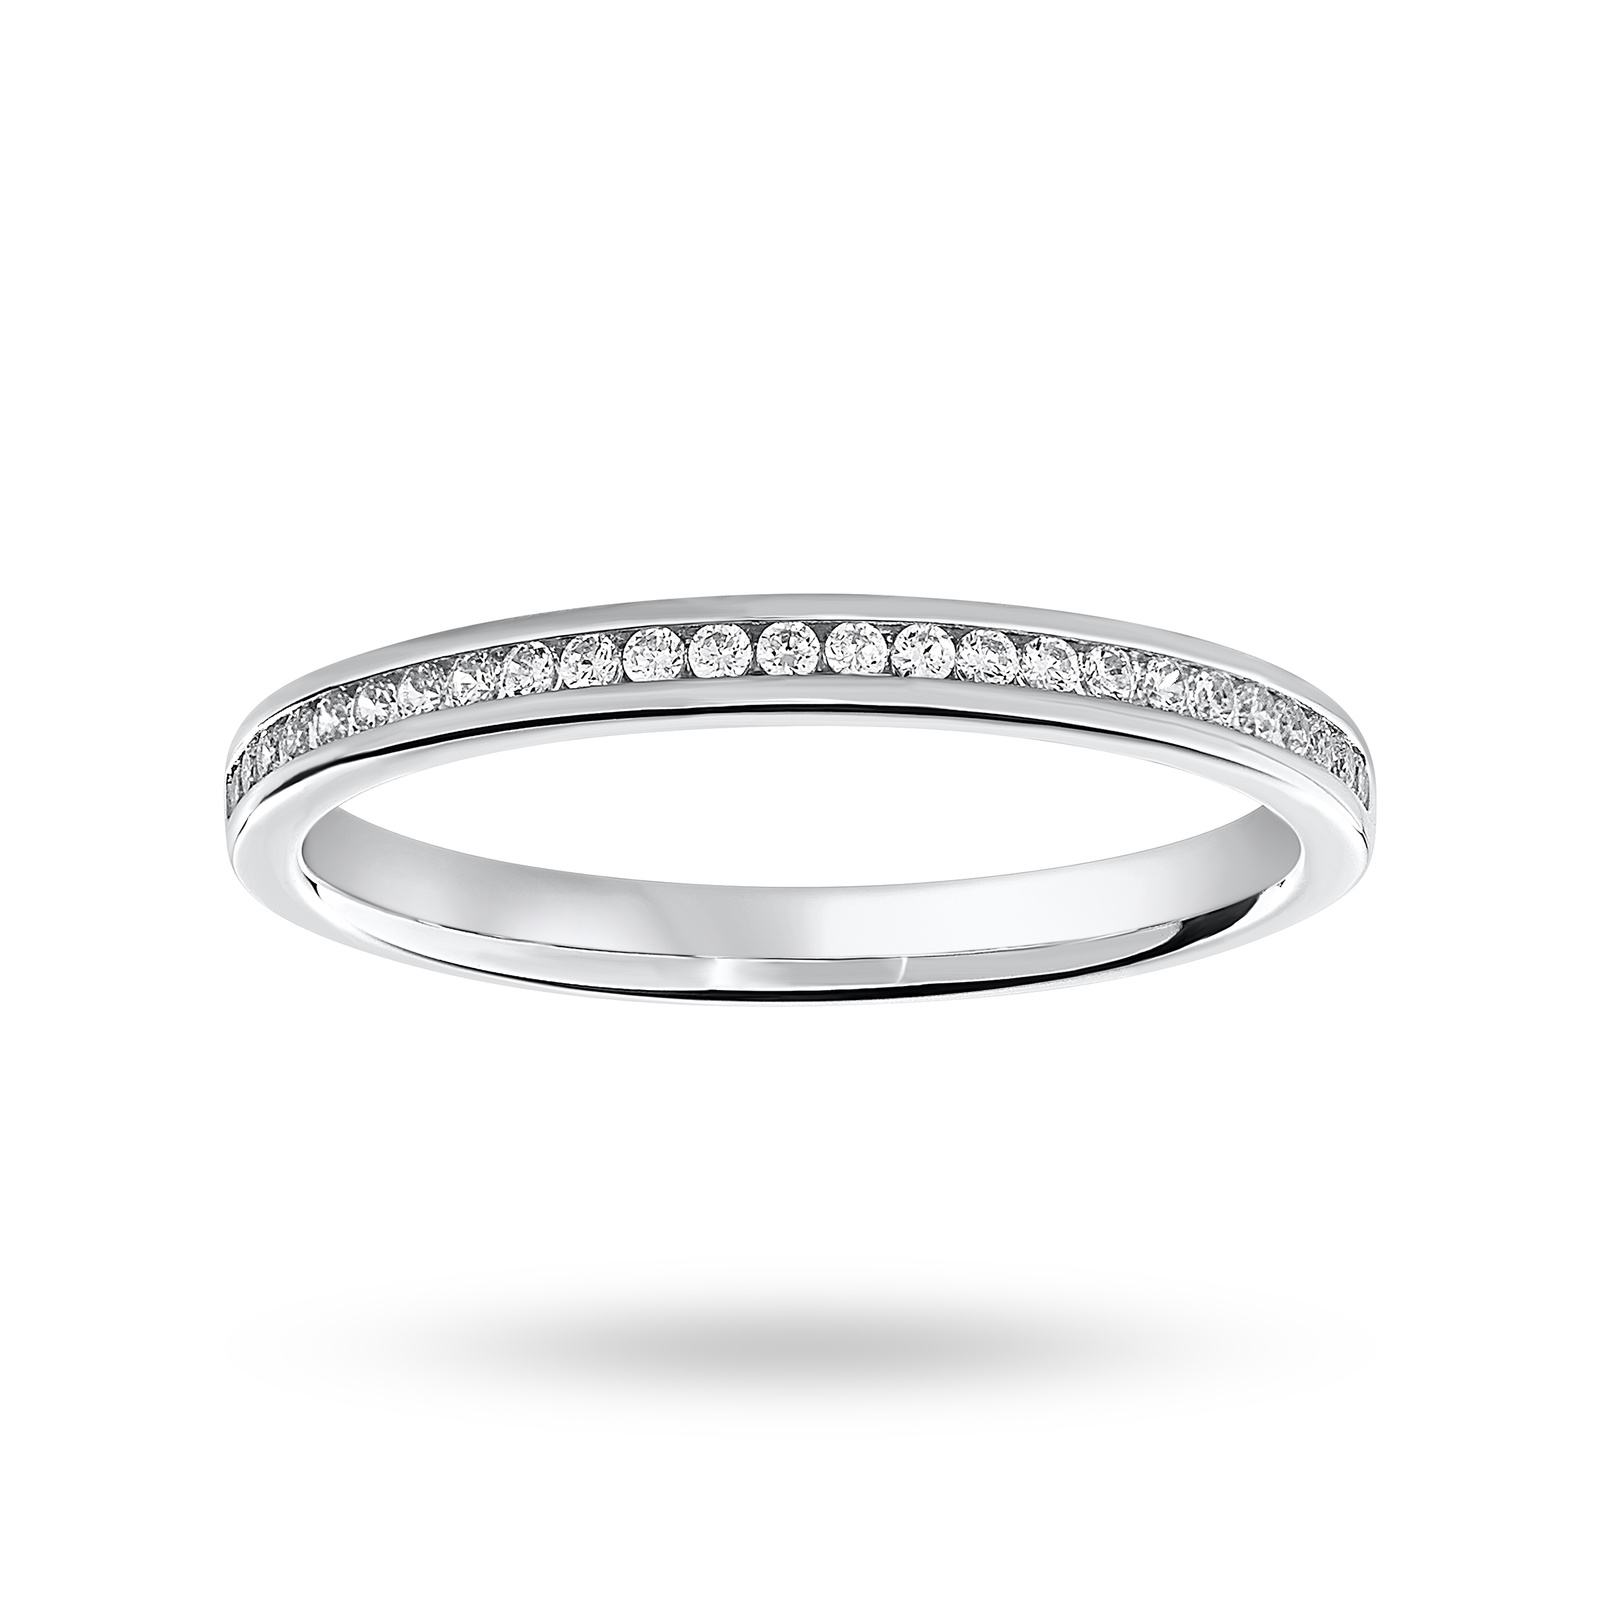 9ct White Gold 0.12ct Half Eternity Ring - Ring Size J